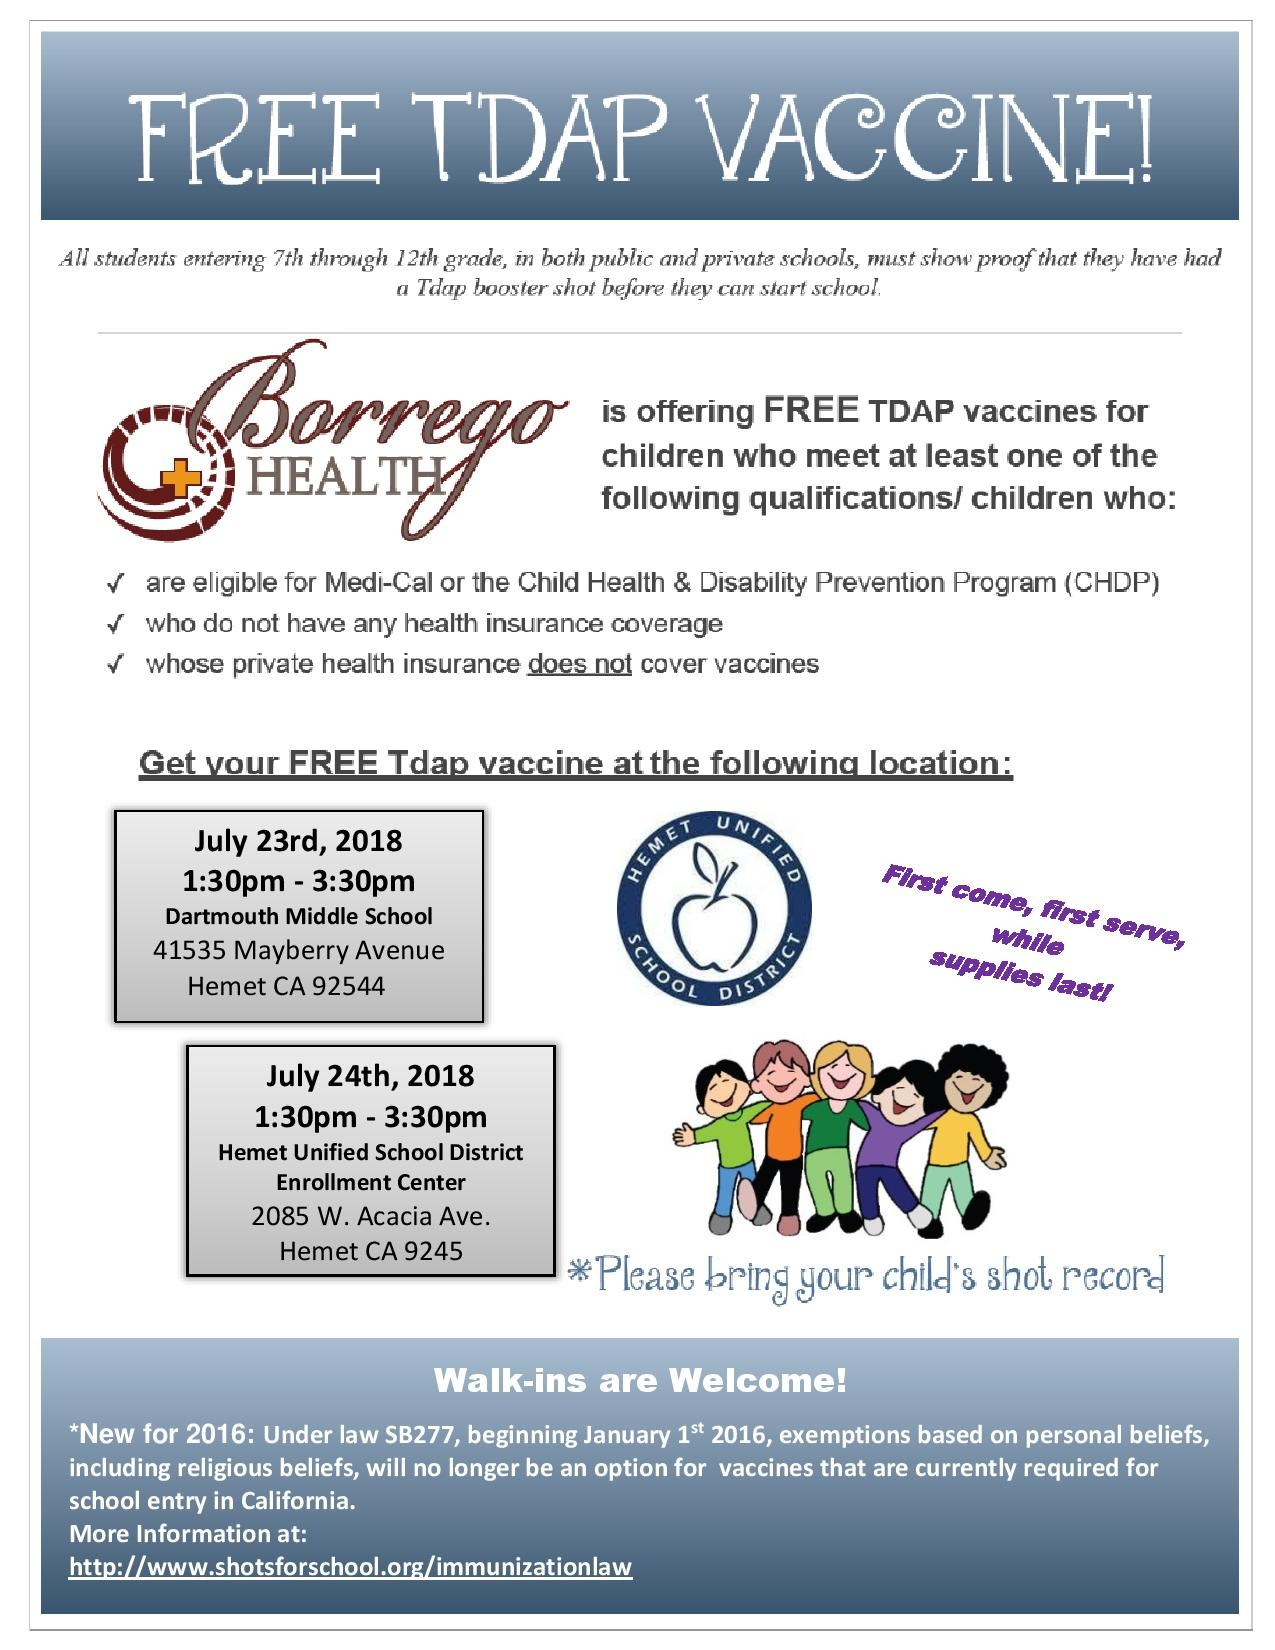 Borrego Health is offering Free TDAP vaccines for Children who meet at least one of the following qualifications: Are eligible for Medi-Cal or the Child Health & Disability Prevention Program Who do not have any Health Insurance Coverage Whose private Health insurance does not cover vaccines First come, first serve, while supplies last! July 23rd, 2018  1:30pm - 3:30pm  Dartmouth Middle School   July 24th, 2018  1:30pm - 3:30pm  Hemet Unified School District Enrollment Center